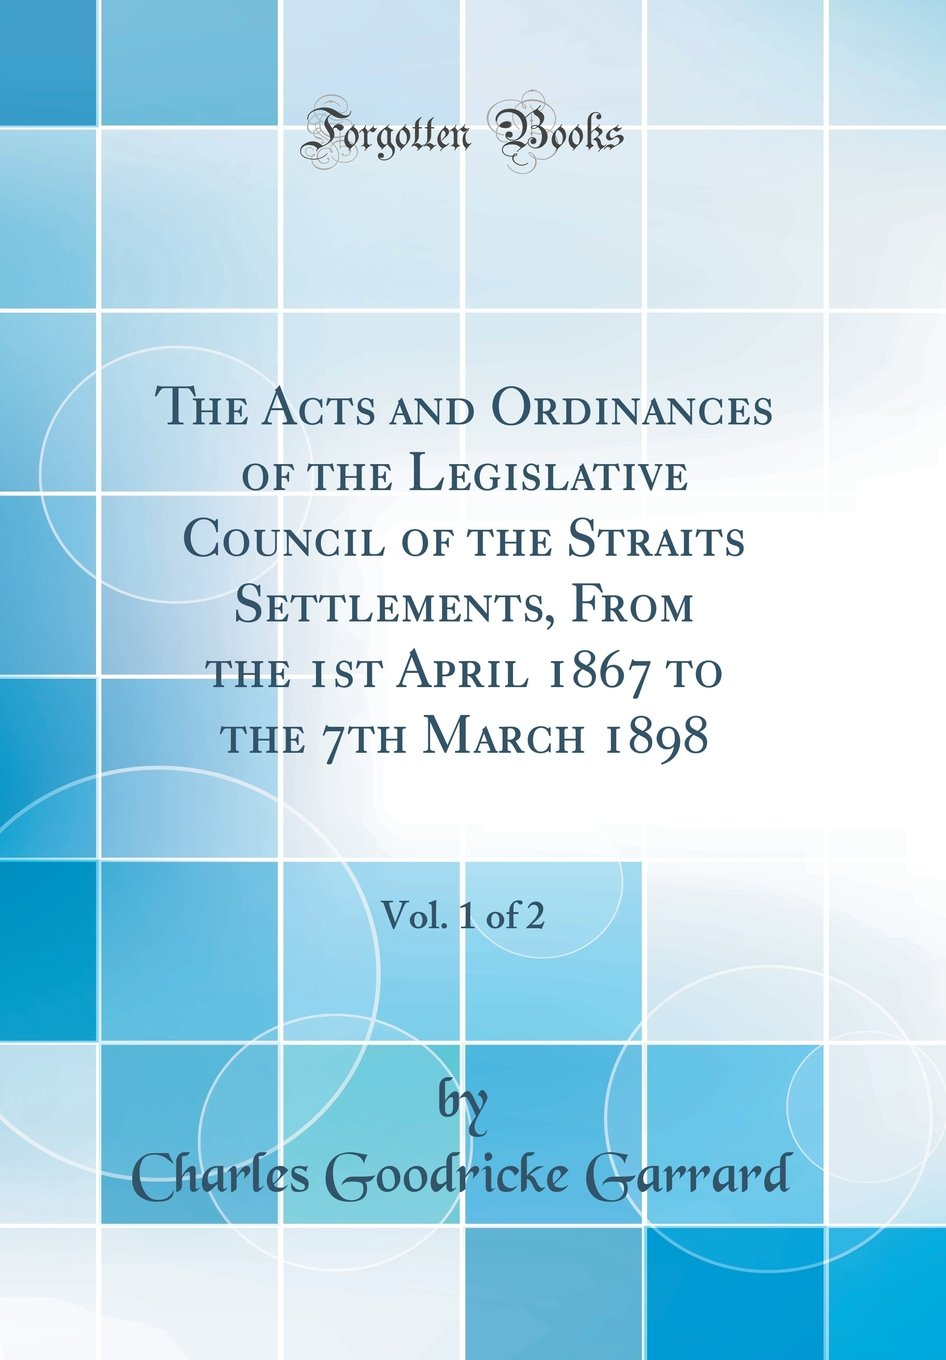 Download The Acts and Ordinances of the Legislative Council of the Straits Settlements, From the 1st April 1867 to the 7th March 1898, Vol. 1 of 2 (Classic Reprint) PDF